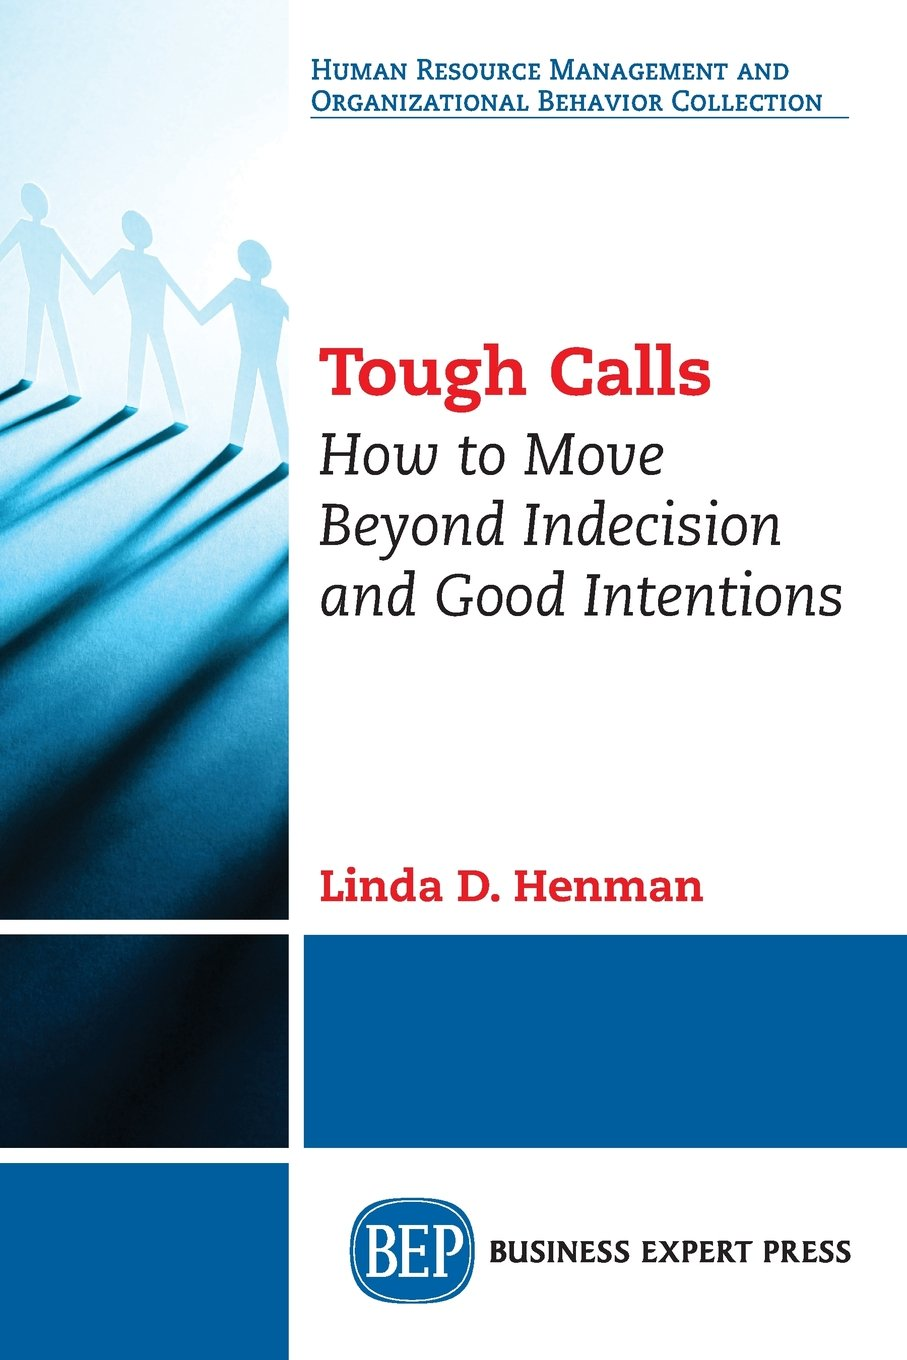 Tough Calls: How to Move Beyond Indecision and Good Intentions PDF